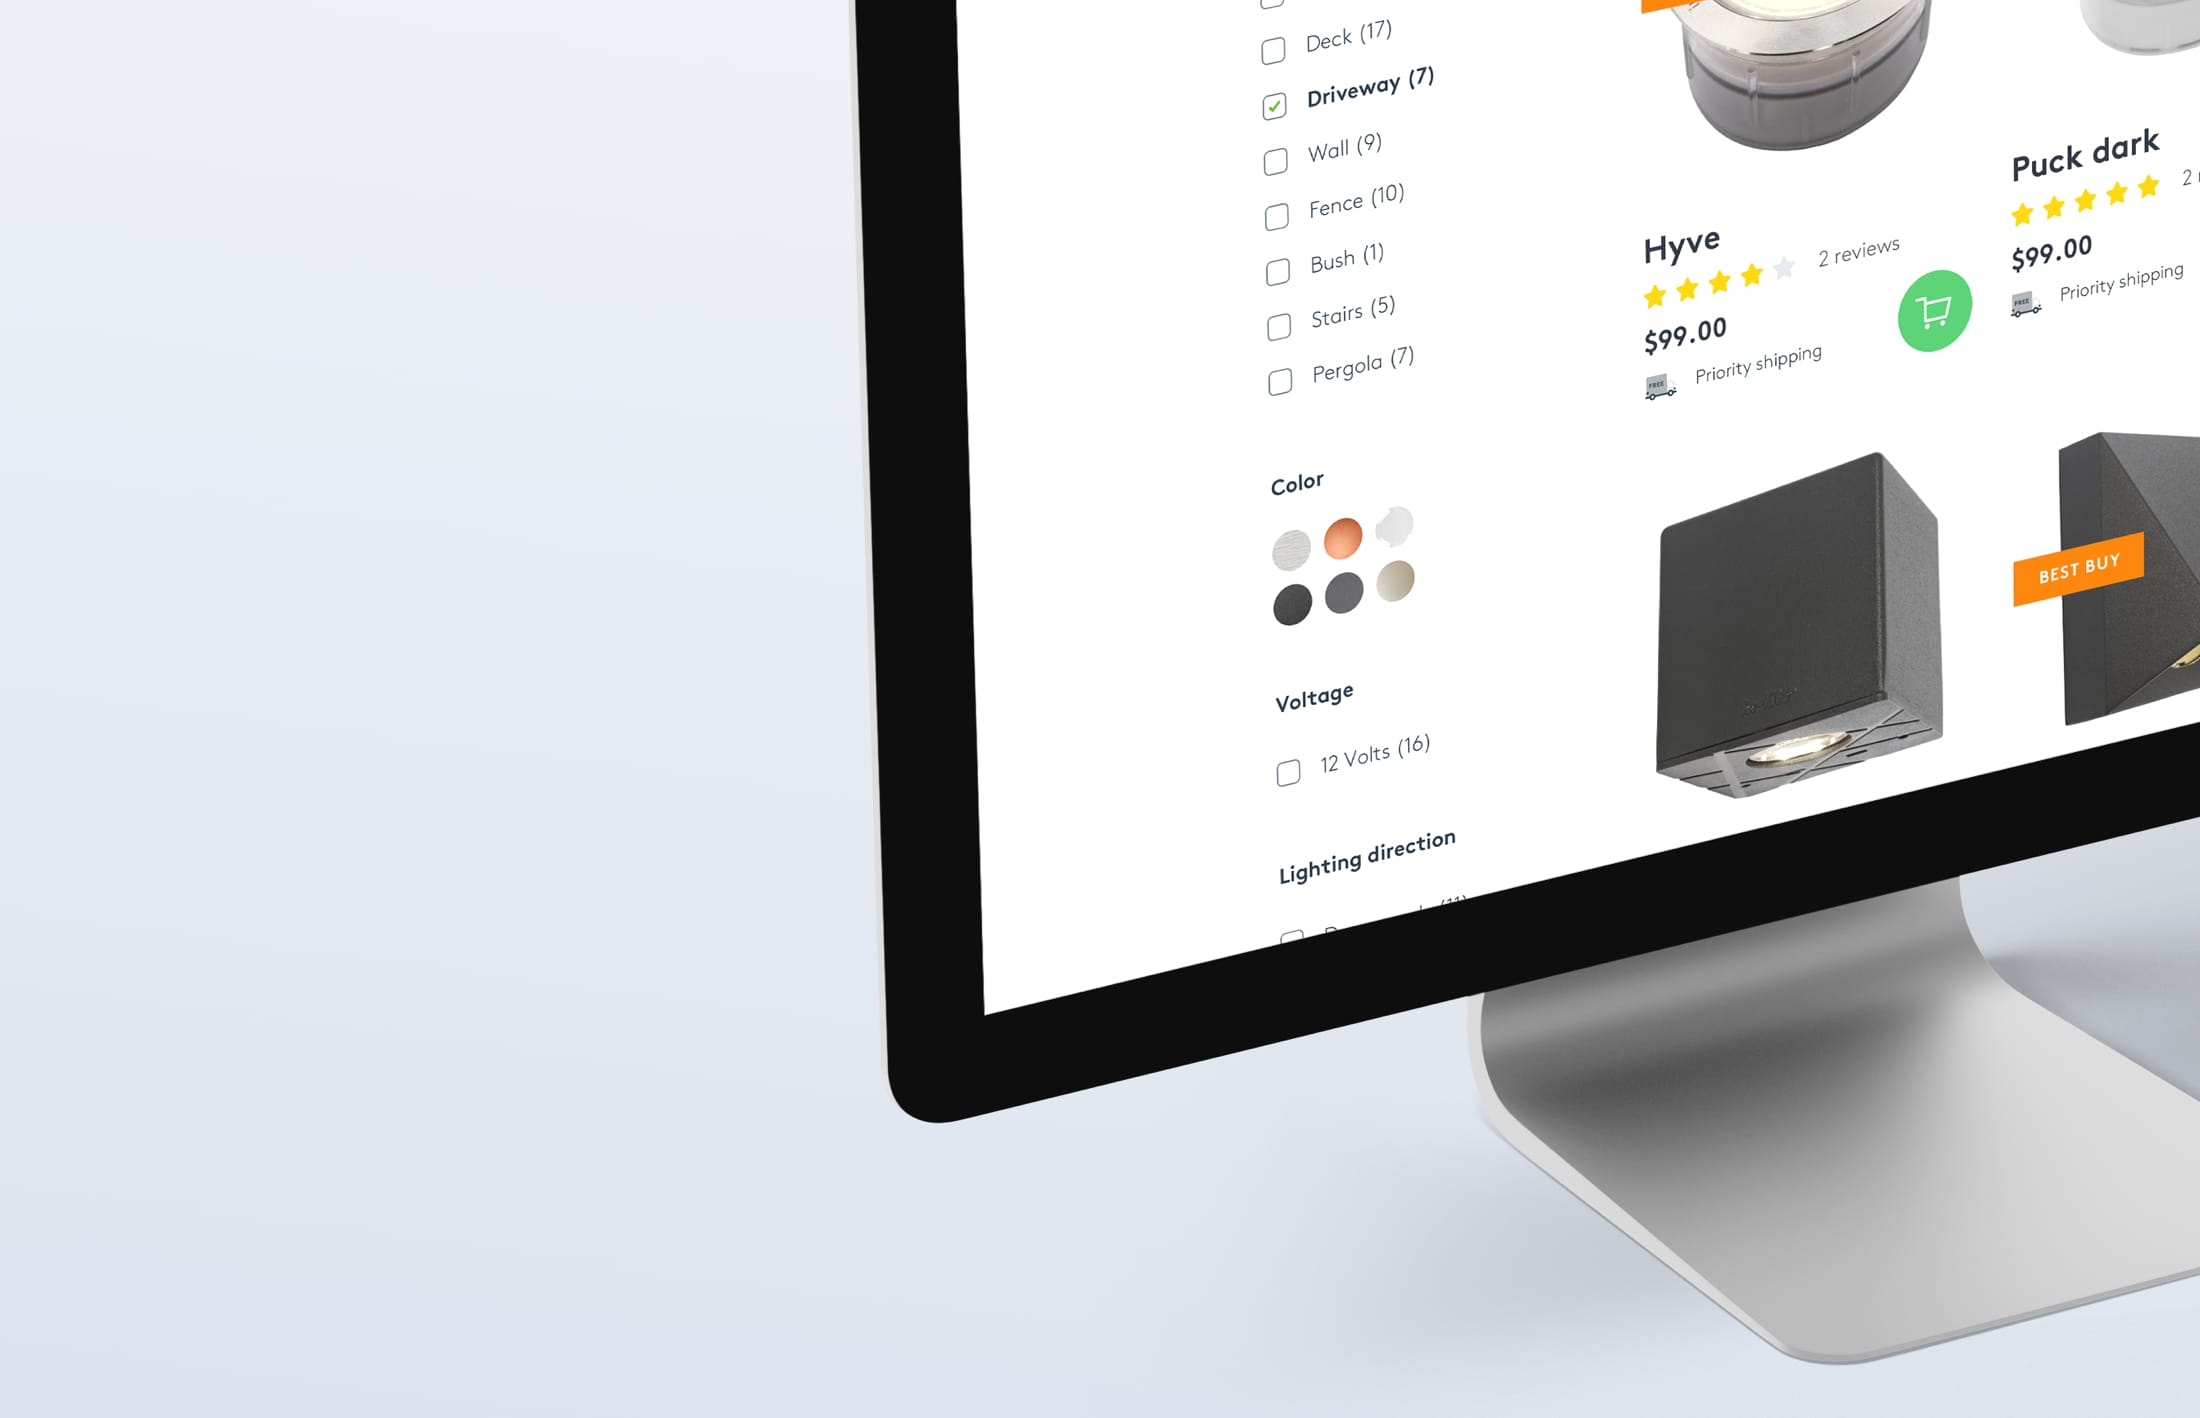 In-Sider product overzicht pagina met filters in Shopify